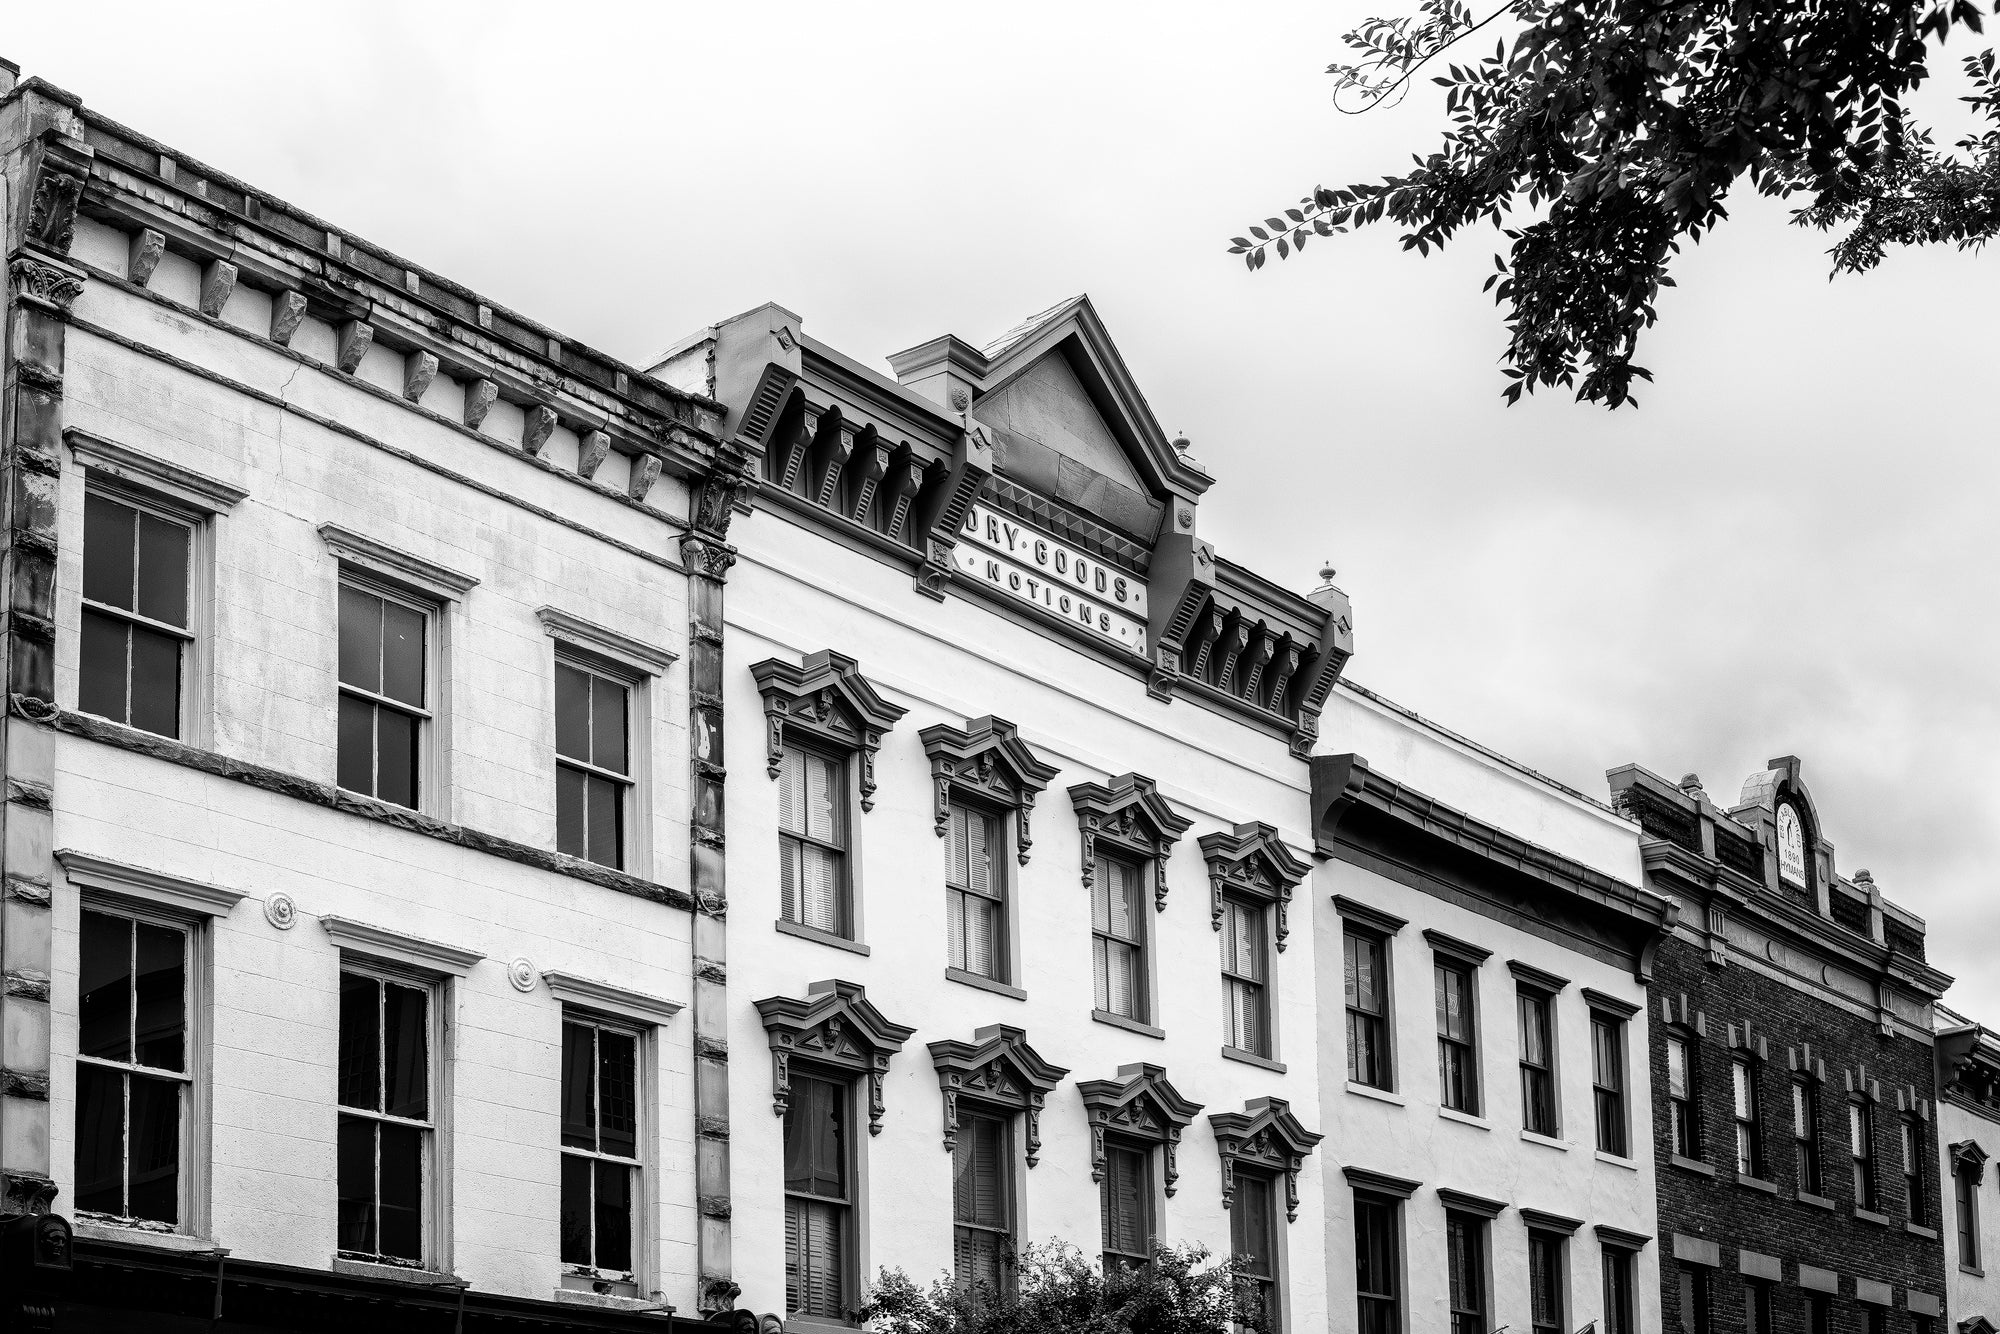 Charleston Meeting Street Historic Storefronts - Black and White Photograph by Keith Dotson. Buy a fine art print.